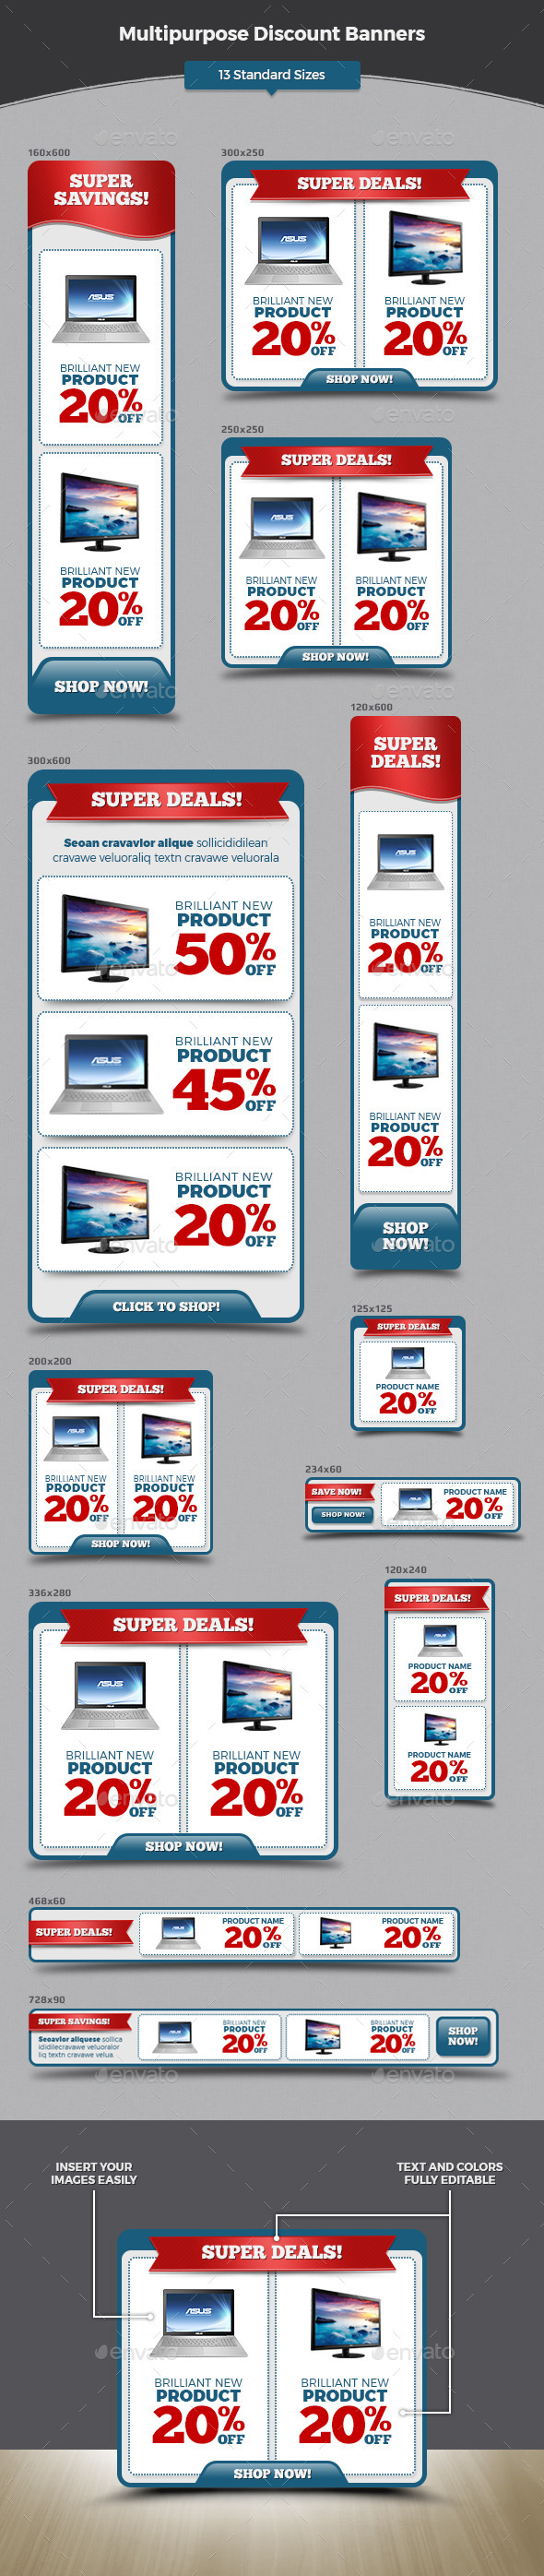 Multipurpose Discount Banners - Banners & Ads Web Elements